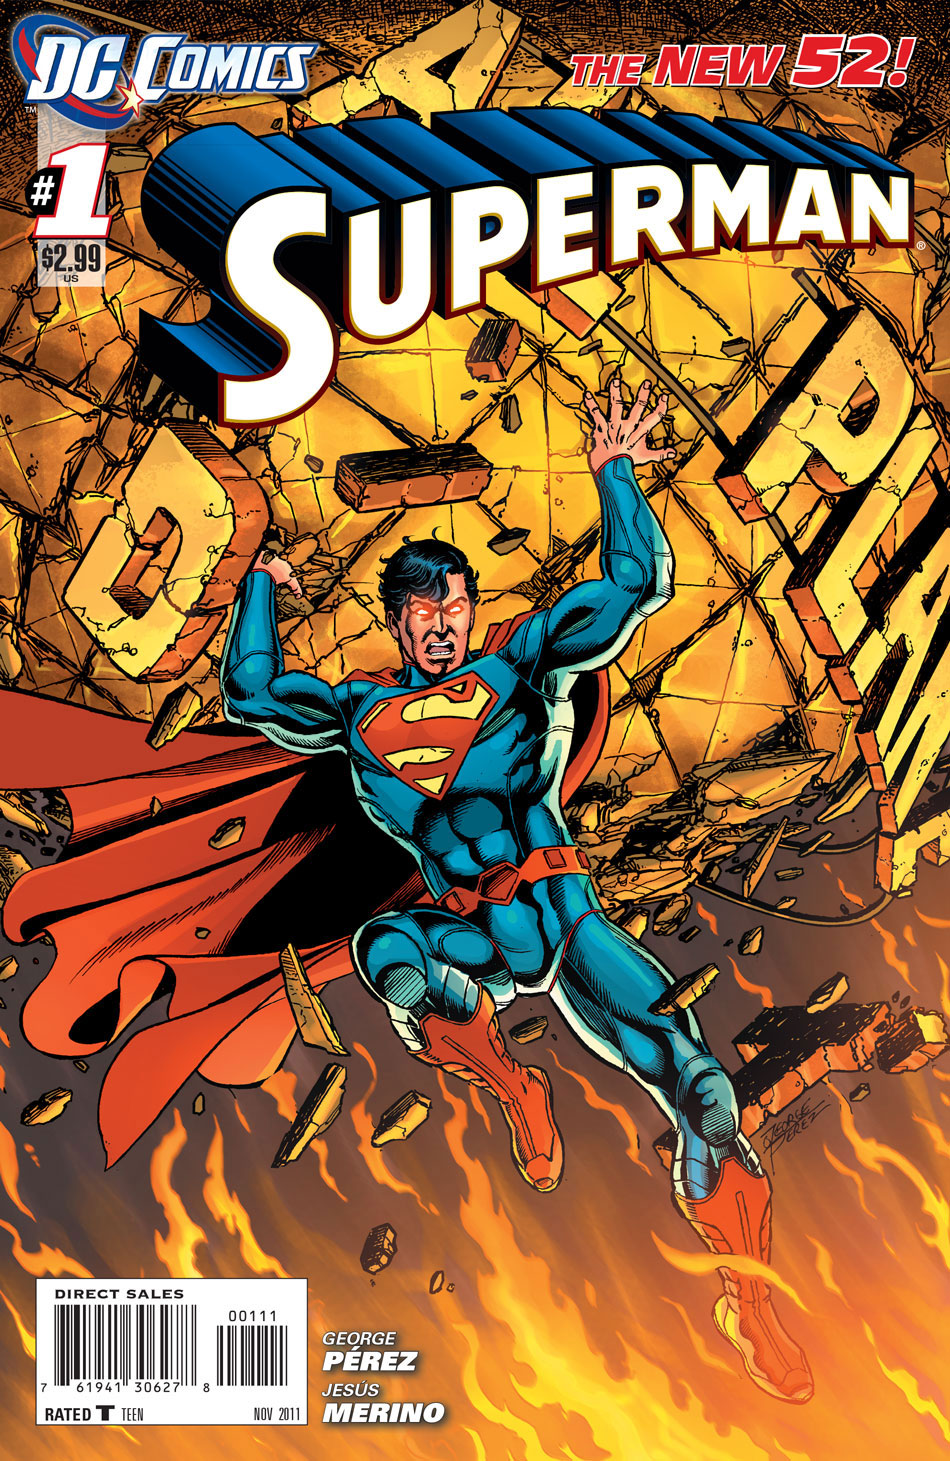 Superman #1 cover by George Perez and Brian Buccellato